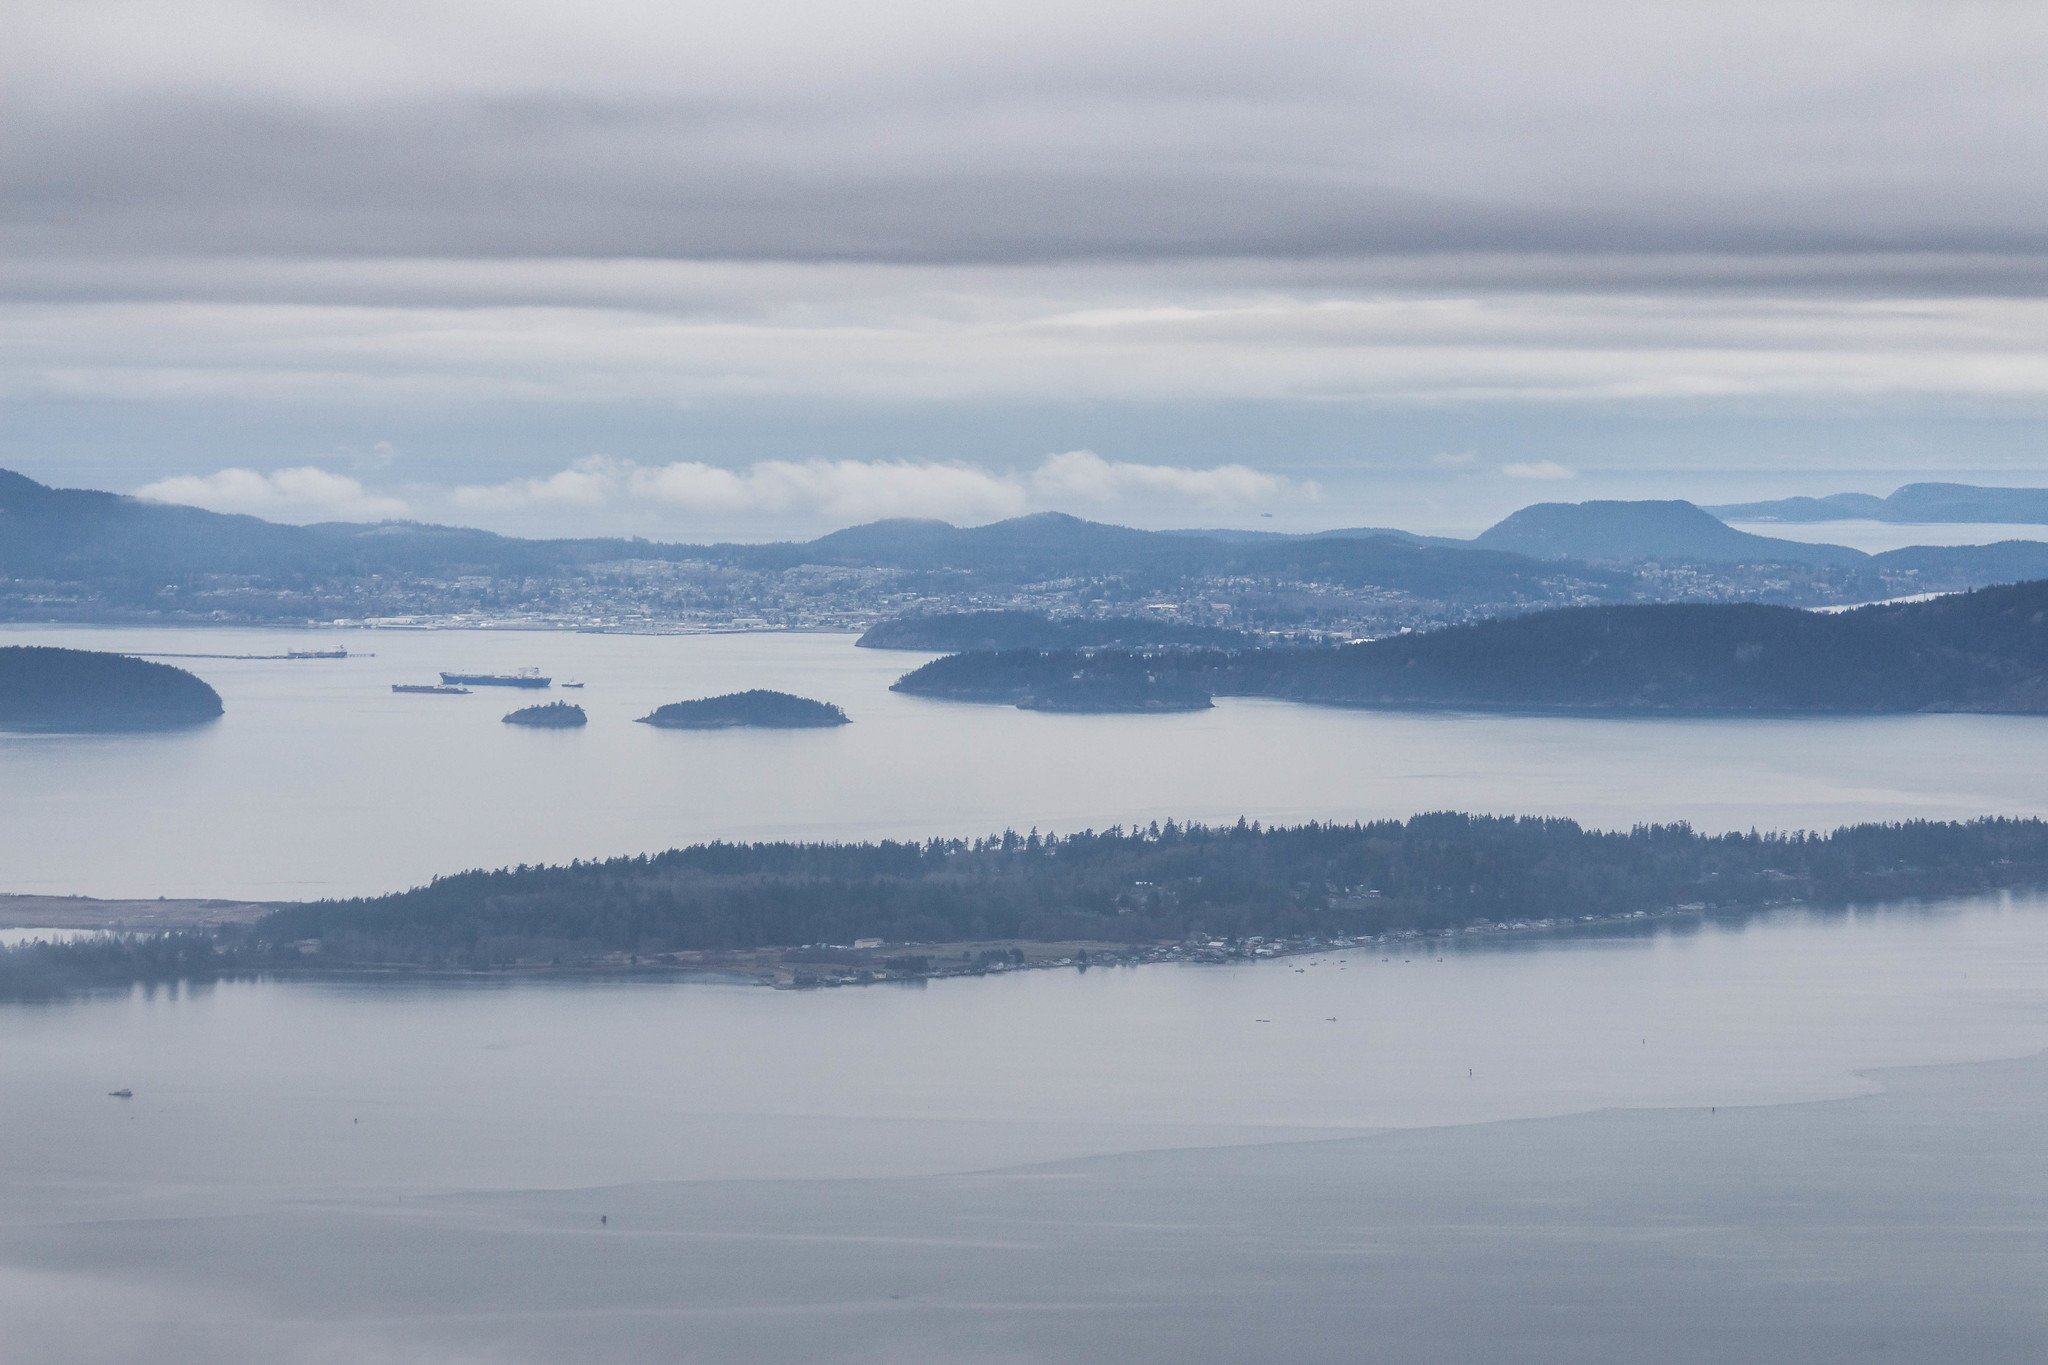 Anacortes and islands